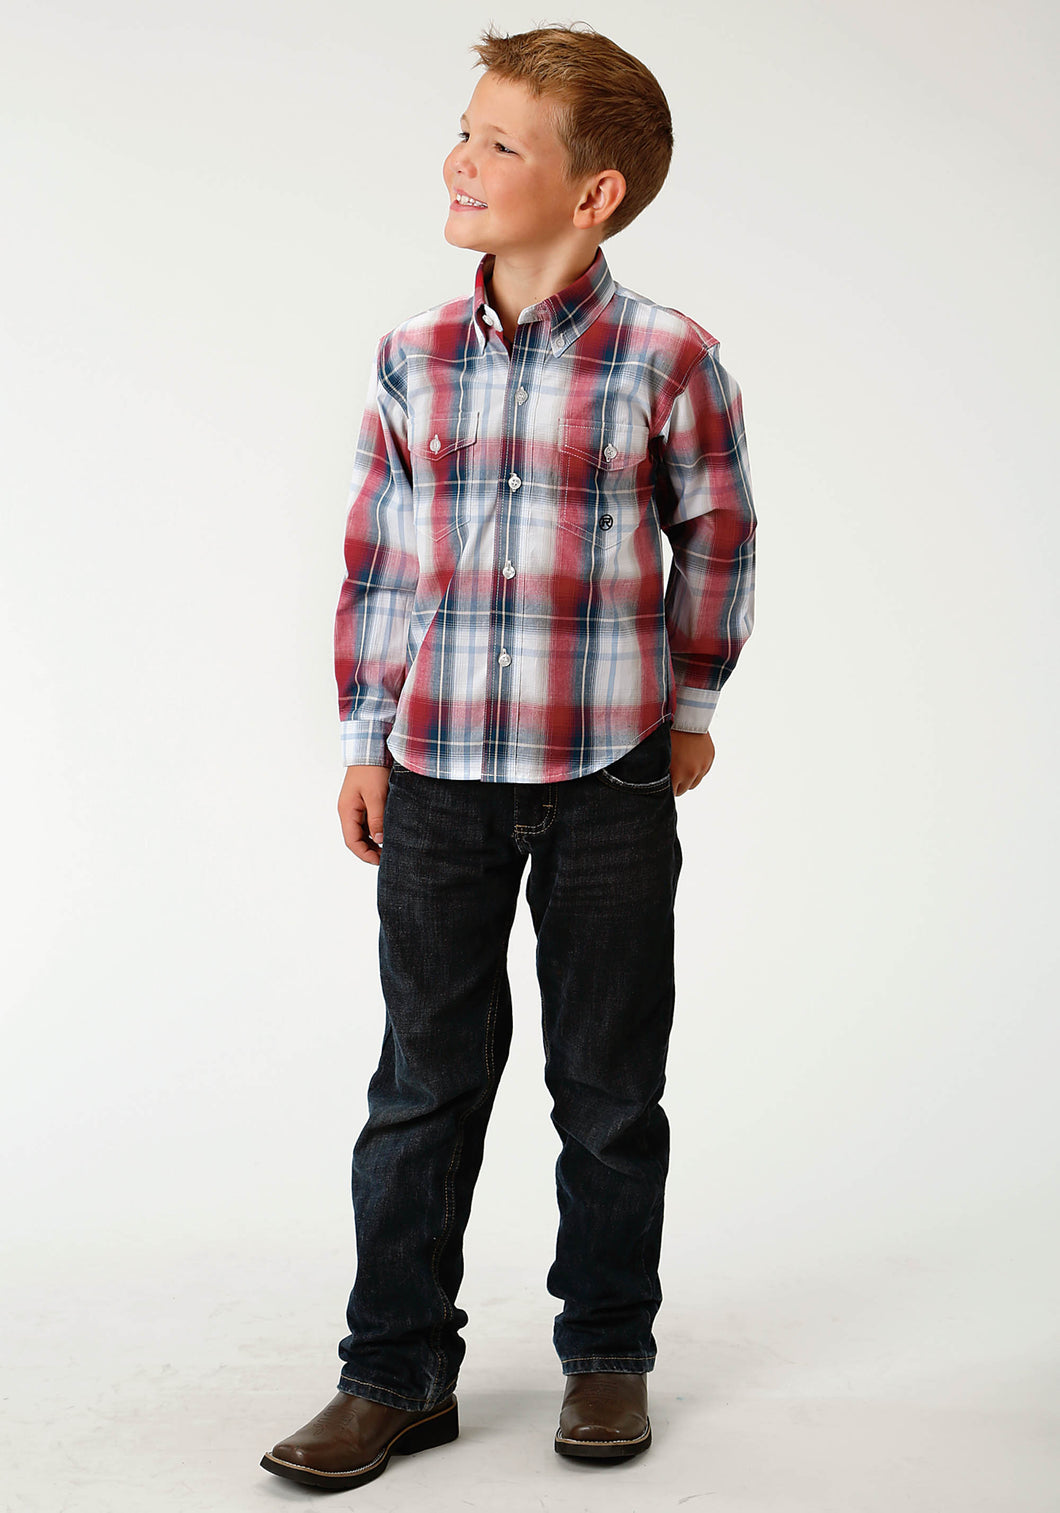 Boys Amarillo Collection- Route 66 Amarillo Boys Long Sleeve Shirt 1679 Independence Plaid